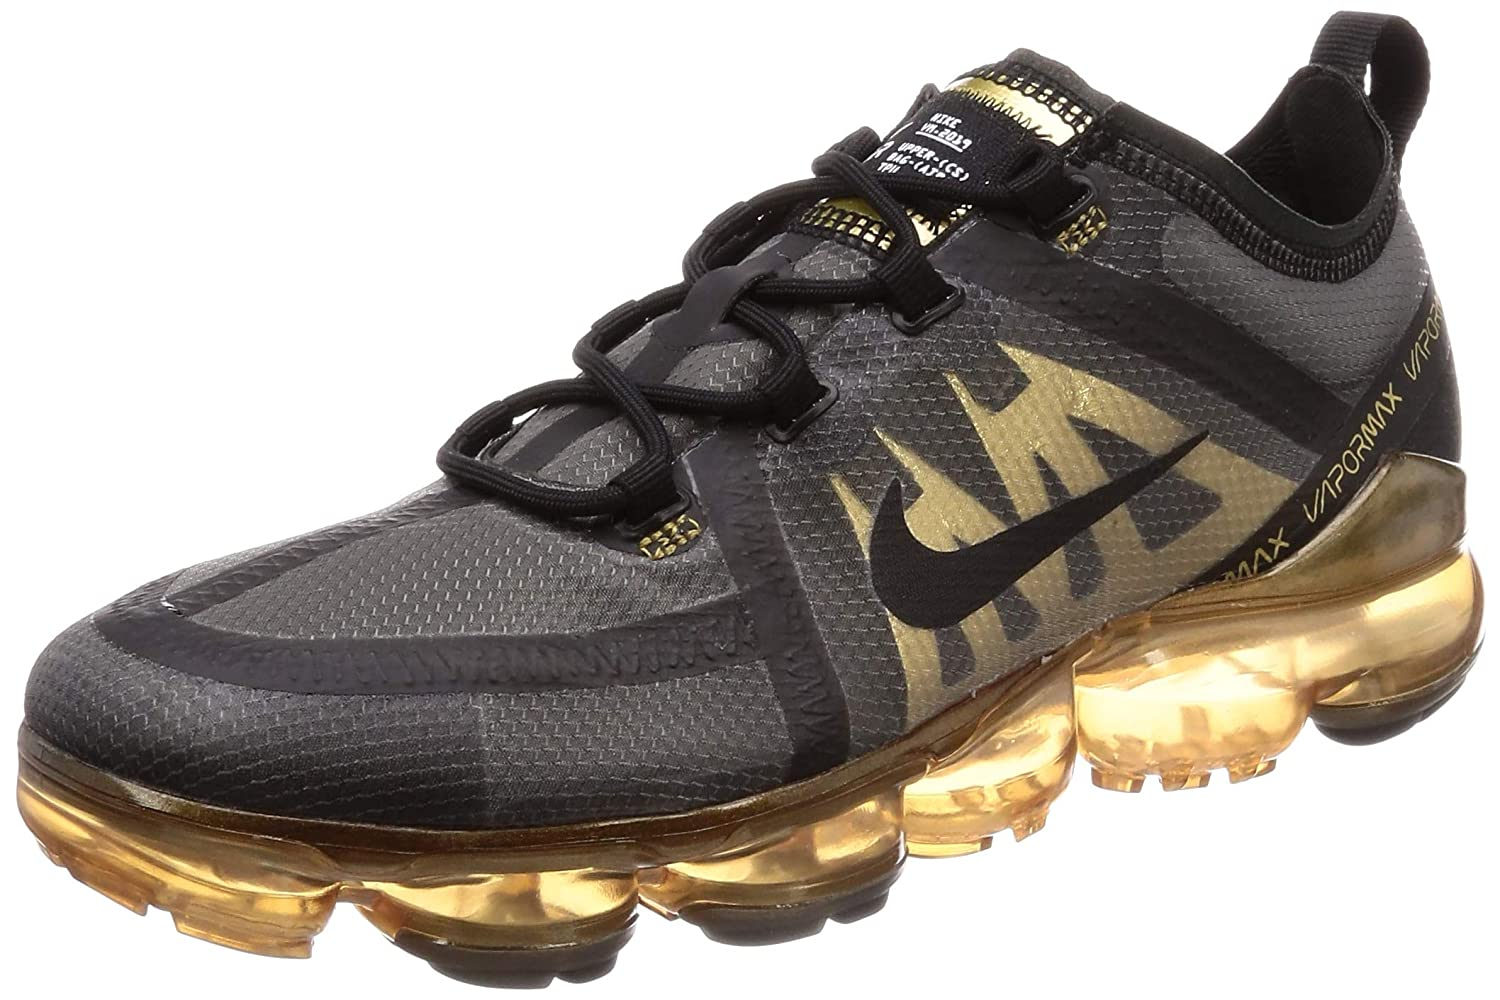 Nike Men's Air Vapormax 2019 Black/Black/Metallic Gold Mesh Running Shoes 9  M US